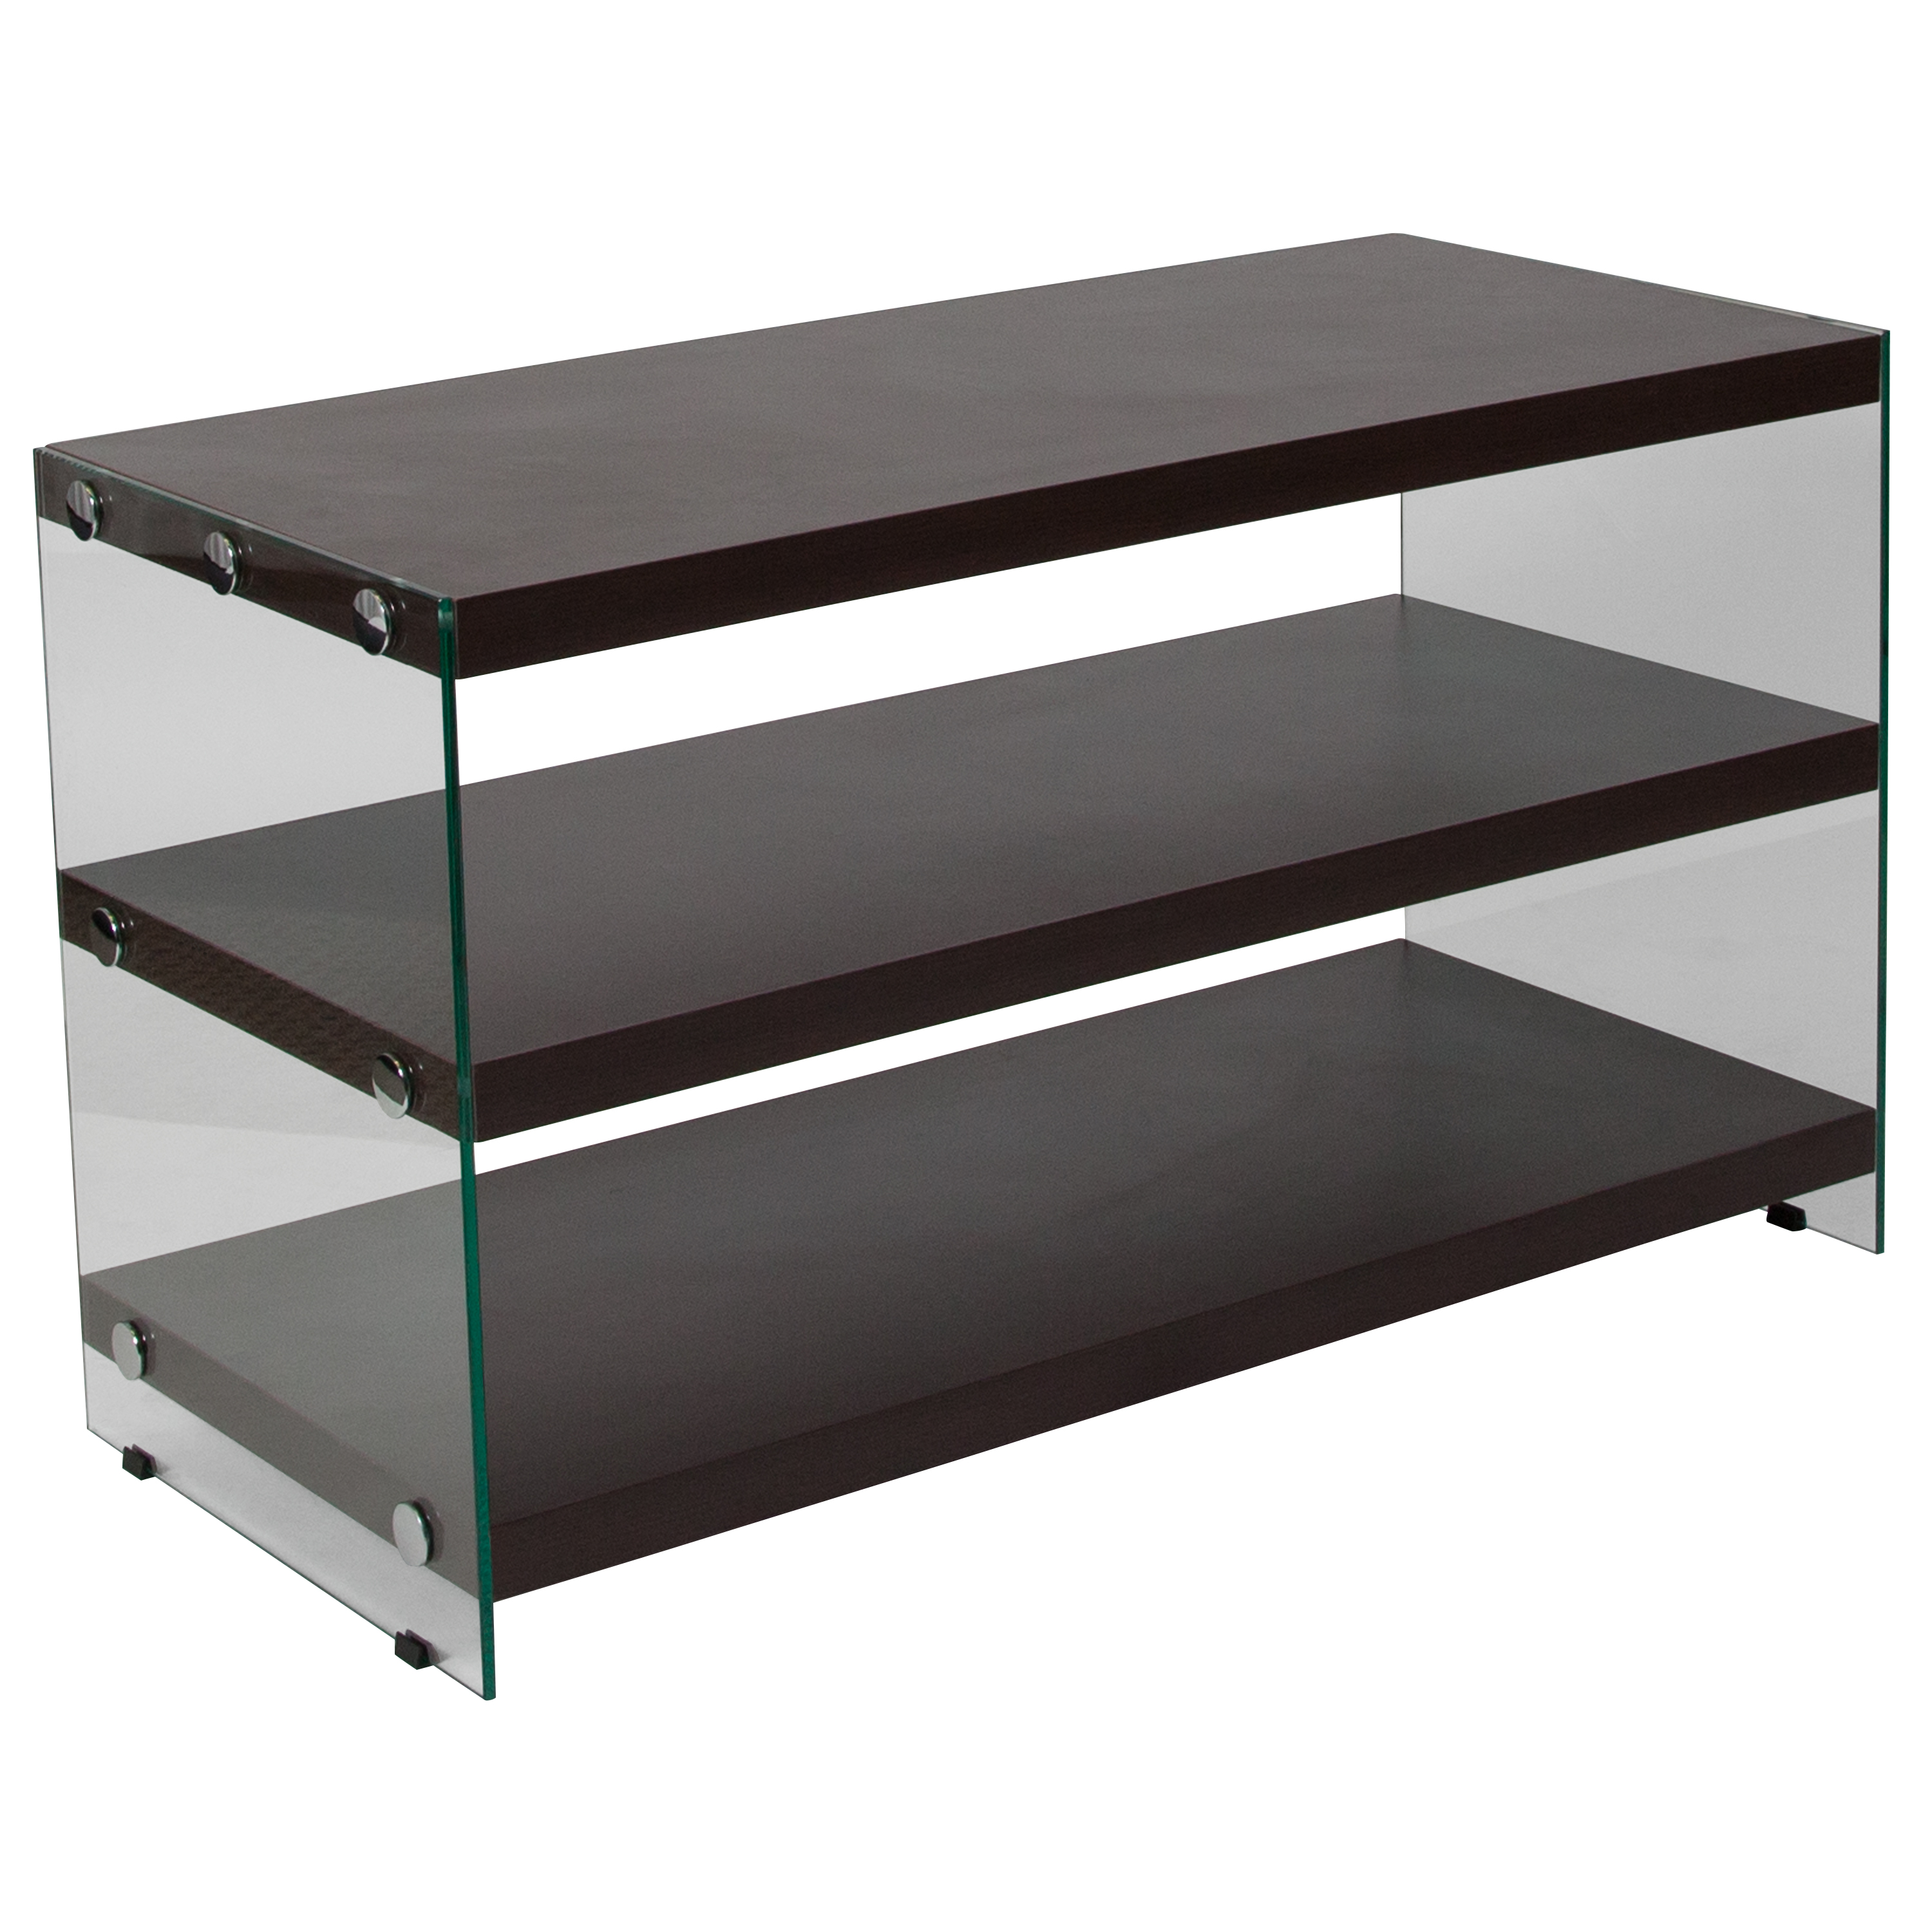 Flash Furniture Wynwood Collection Dark Ash Wood Grain Finish TV Stand with Shelves and Glass Frame